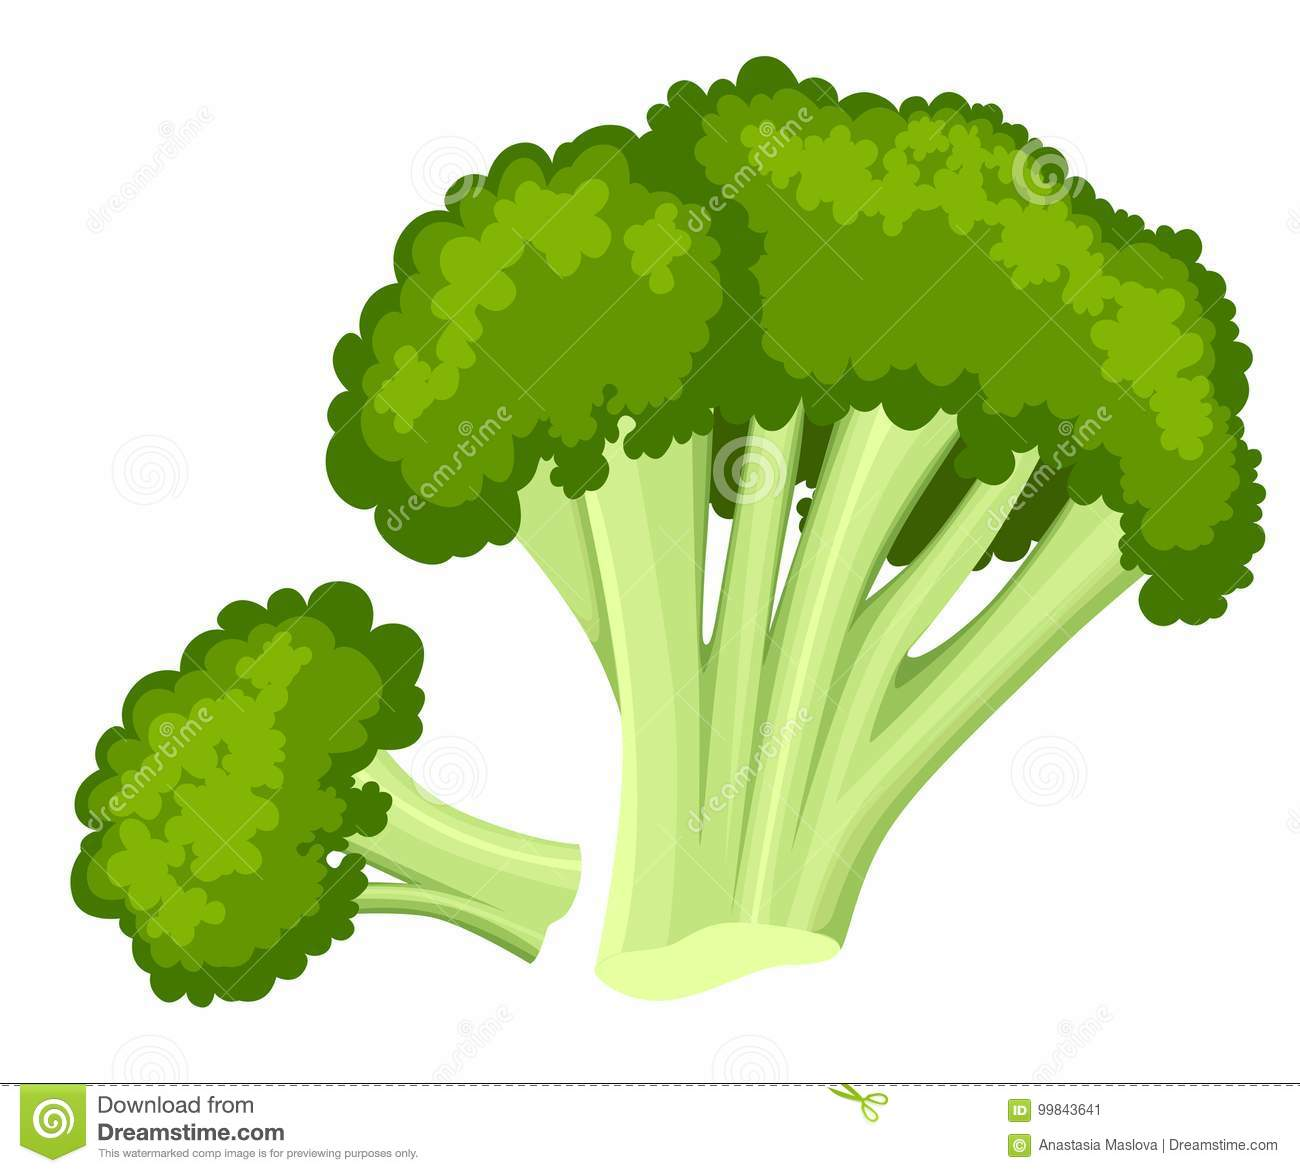 d7159d60 Bright collection of colorful broccoli. Fresh cartoon different vegetable  isolated on white background used for